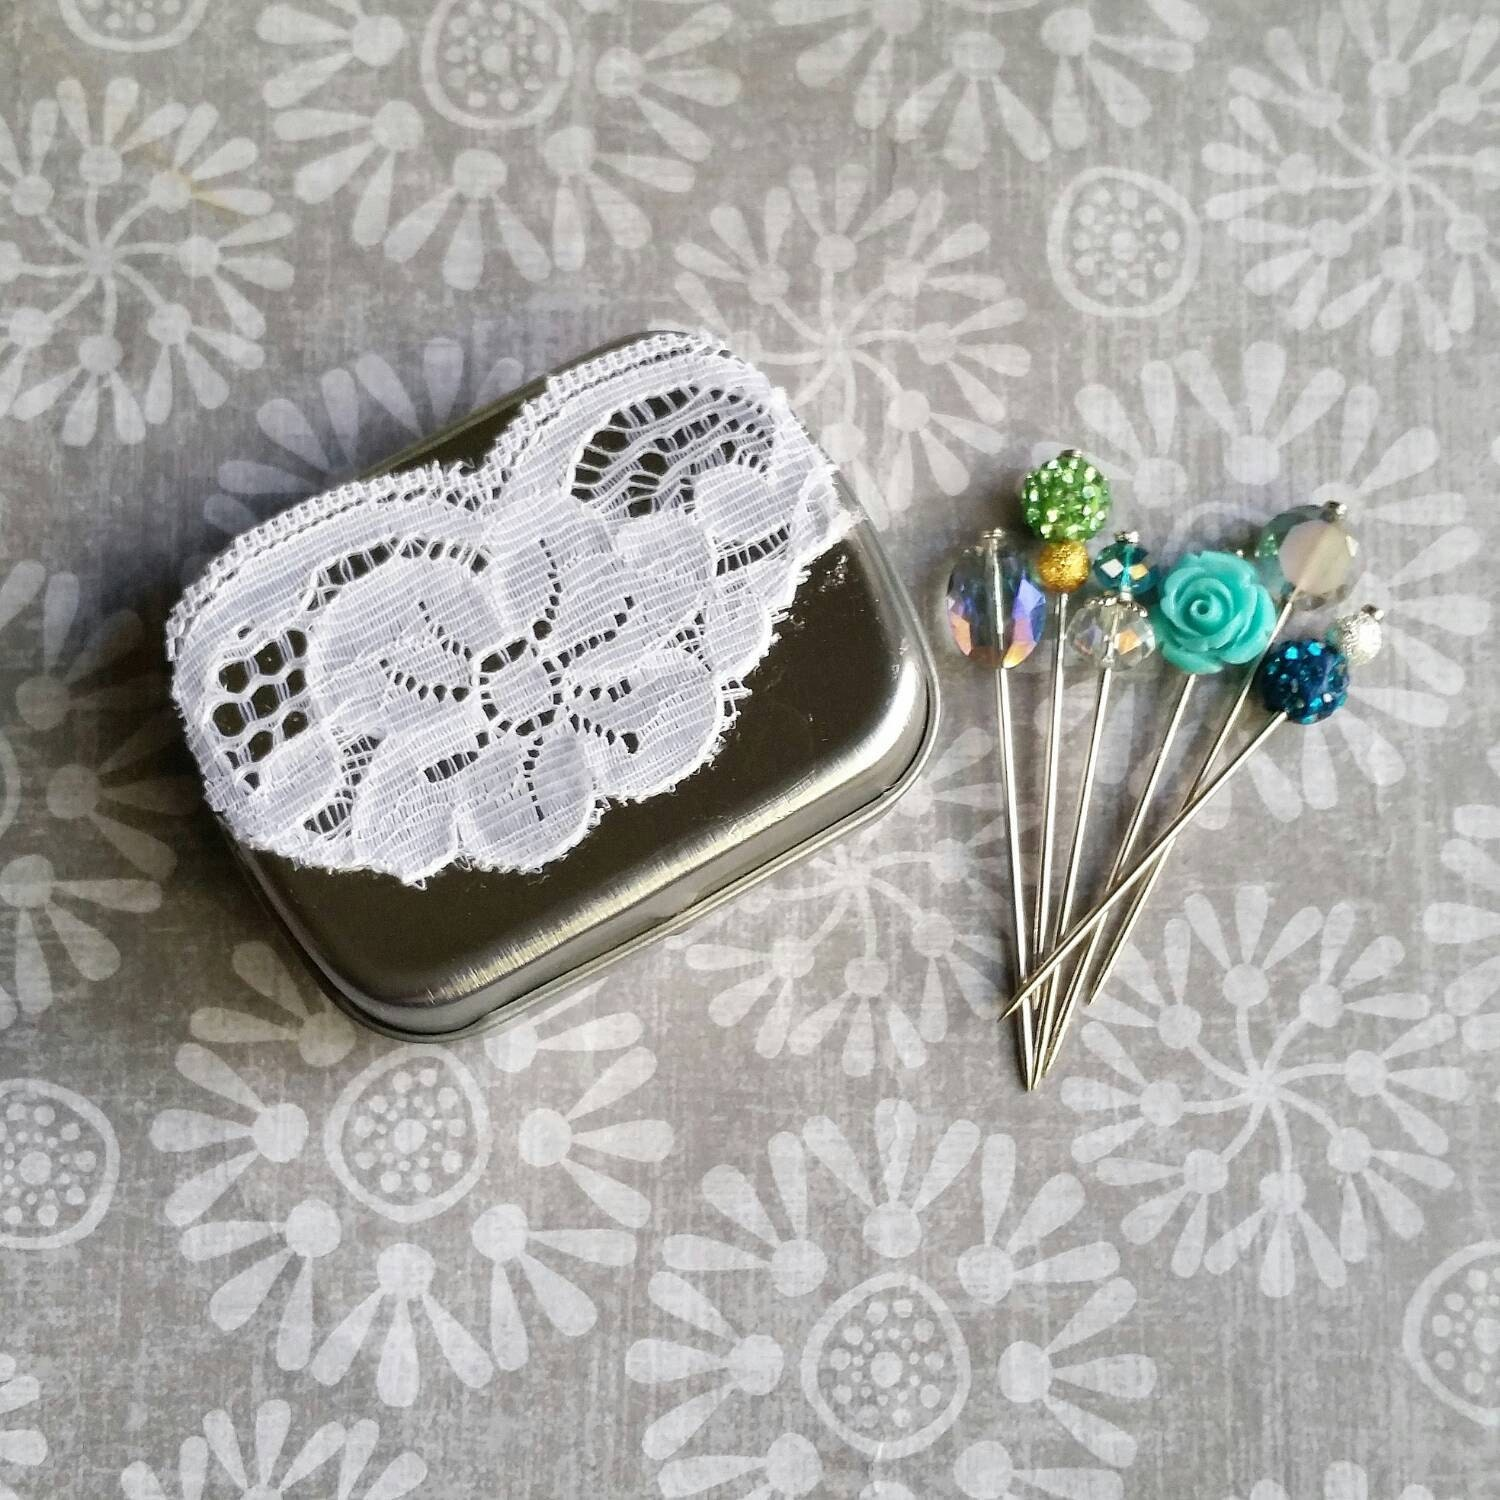 Hijab Pin Travelling Tin Hijab Pin Box Hijab Accessories